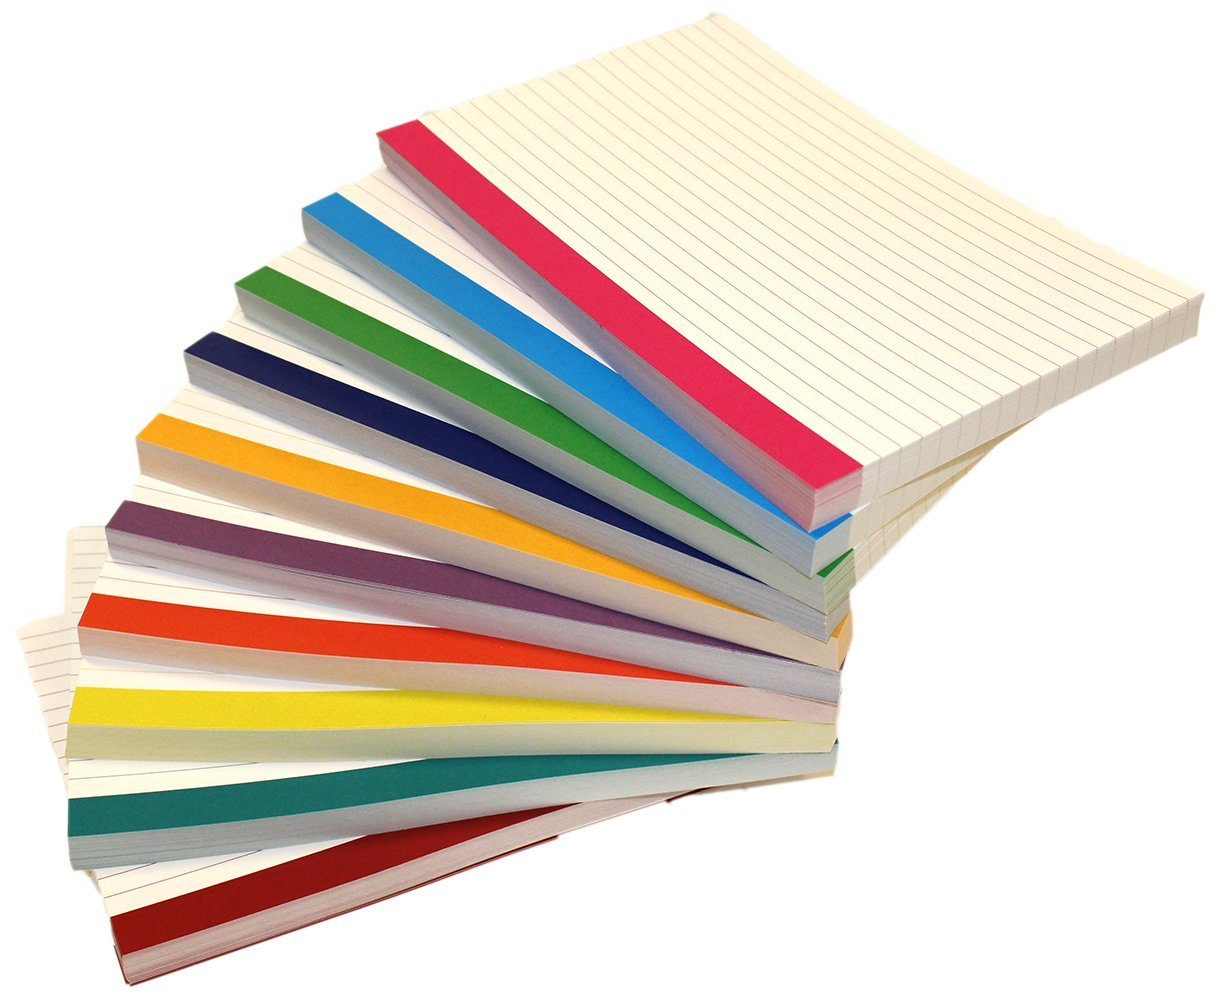 Debra Dale Designs - Color Bar Ruled Single Sided Index Cards - 5 x 8 Inches - White - 500 (50 each of 10 colors) - Wrapped in 2 packages of 250 - Standard 110# Index Card Stock - 199 GSM - .009 Thick by DEBRADALE DESIGNS